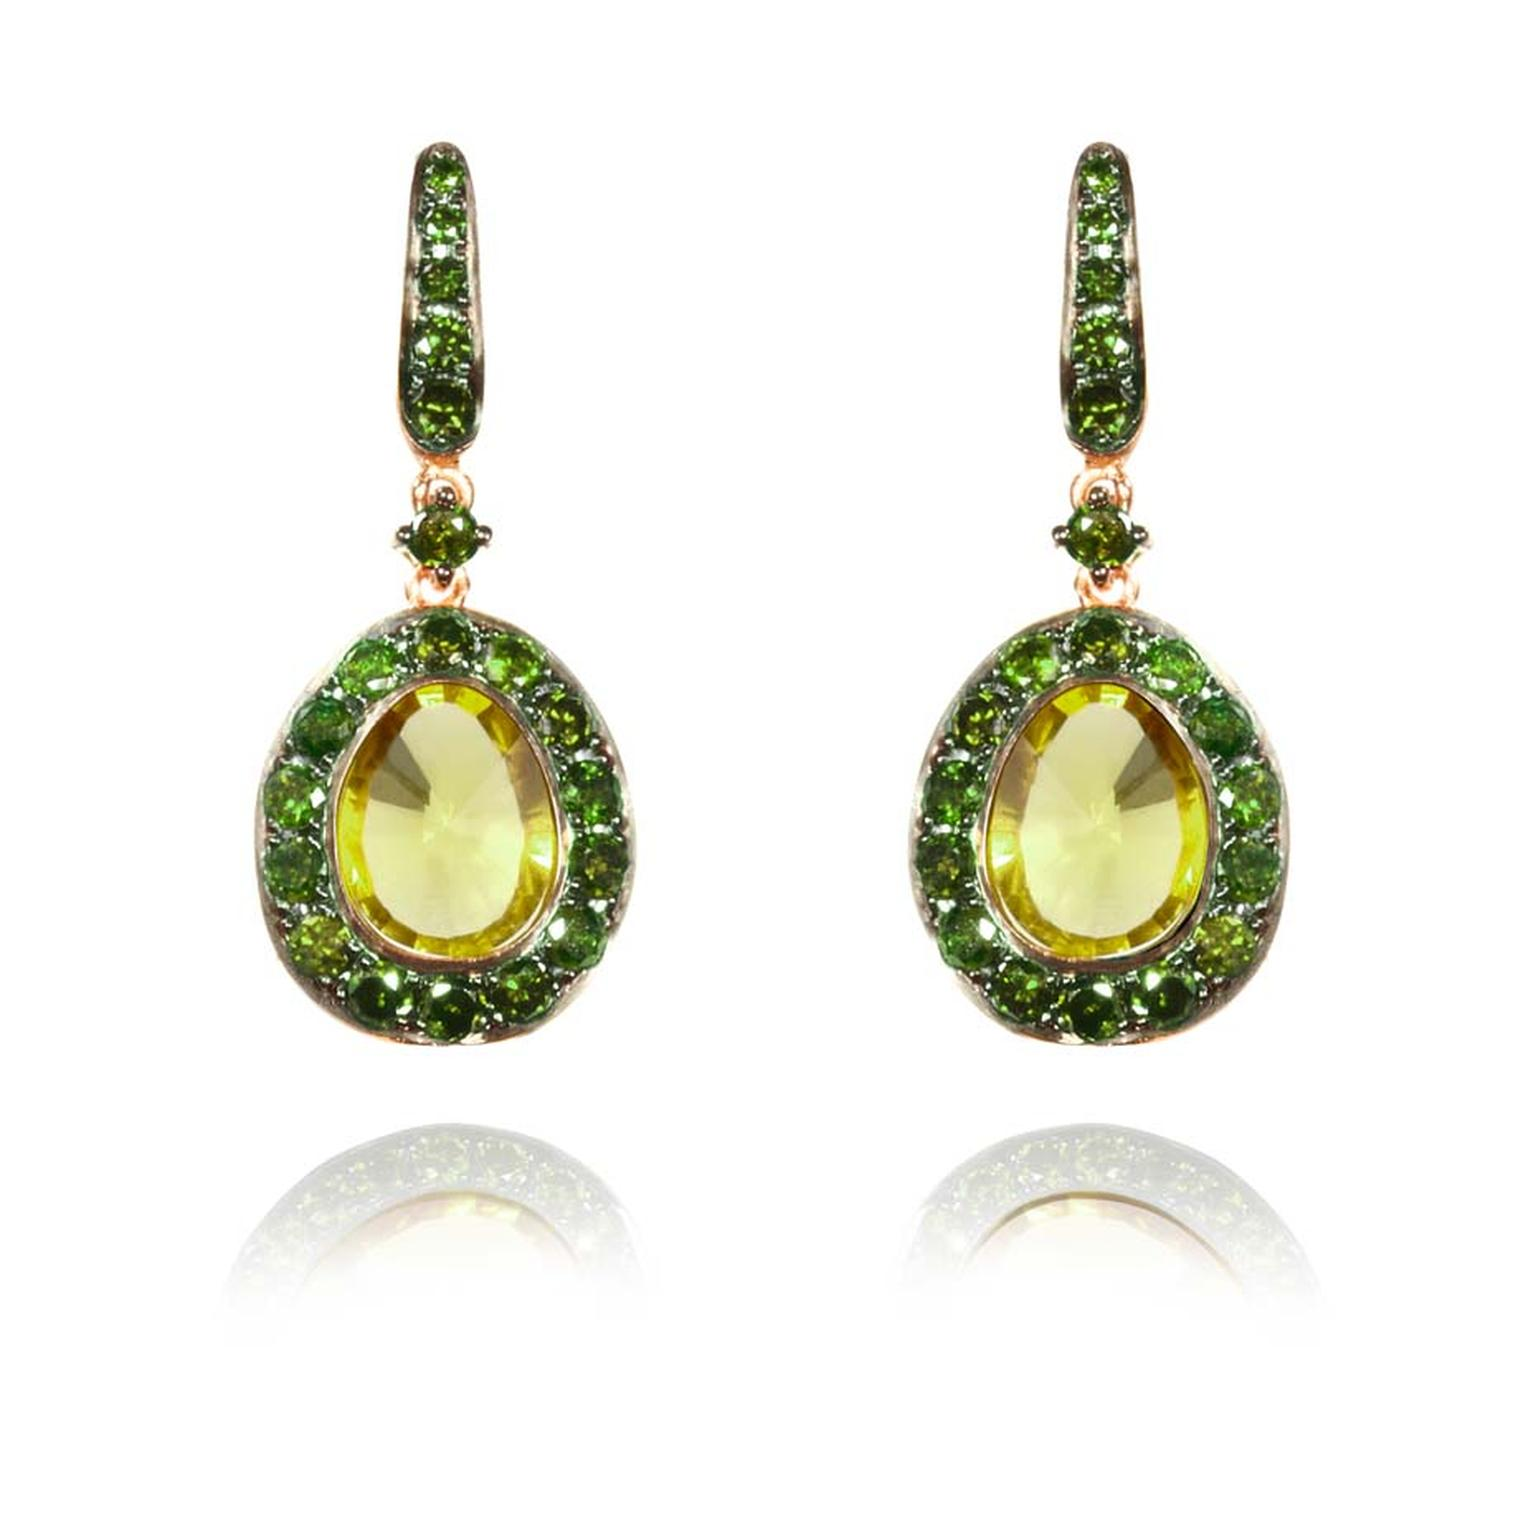 Annoushka Dusty Diamonds rose gold earrings with green diamonds and centre olive quartz.